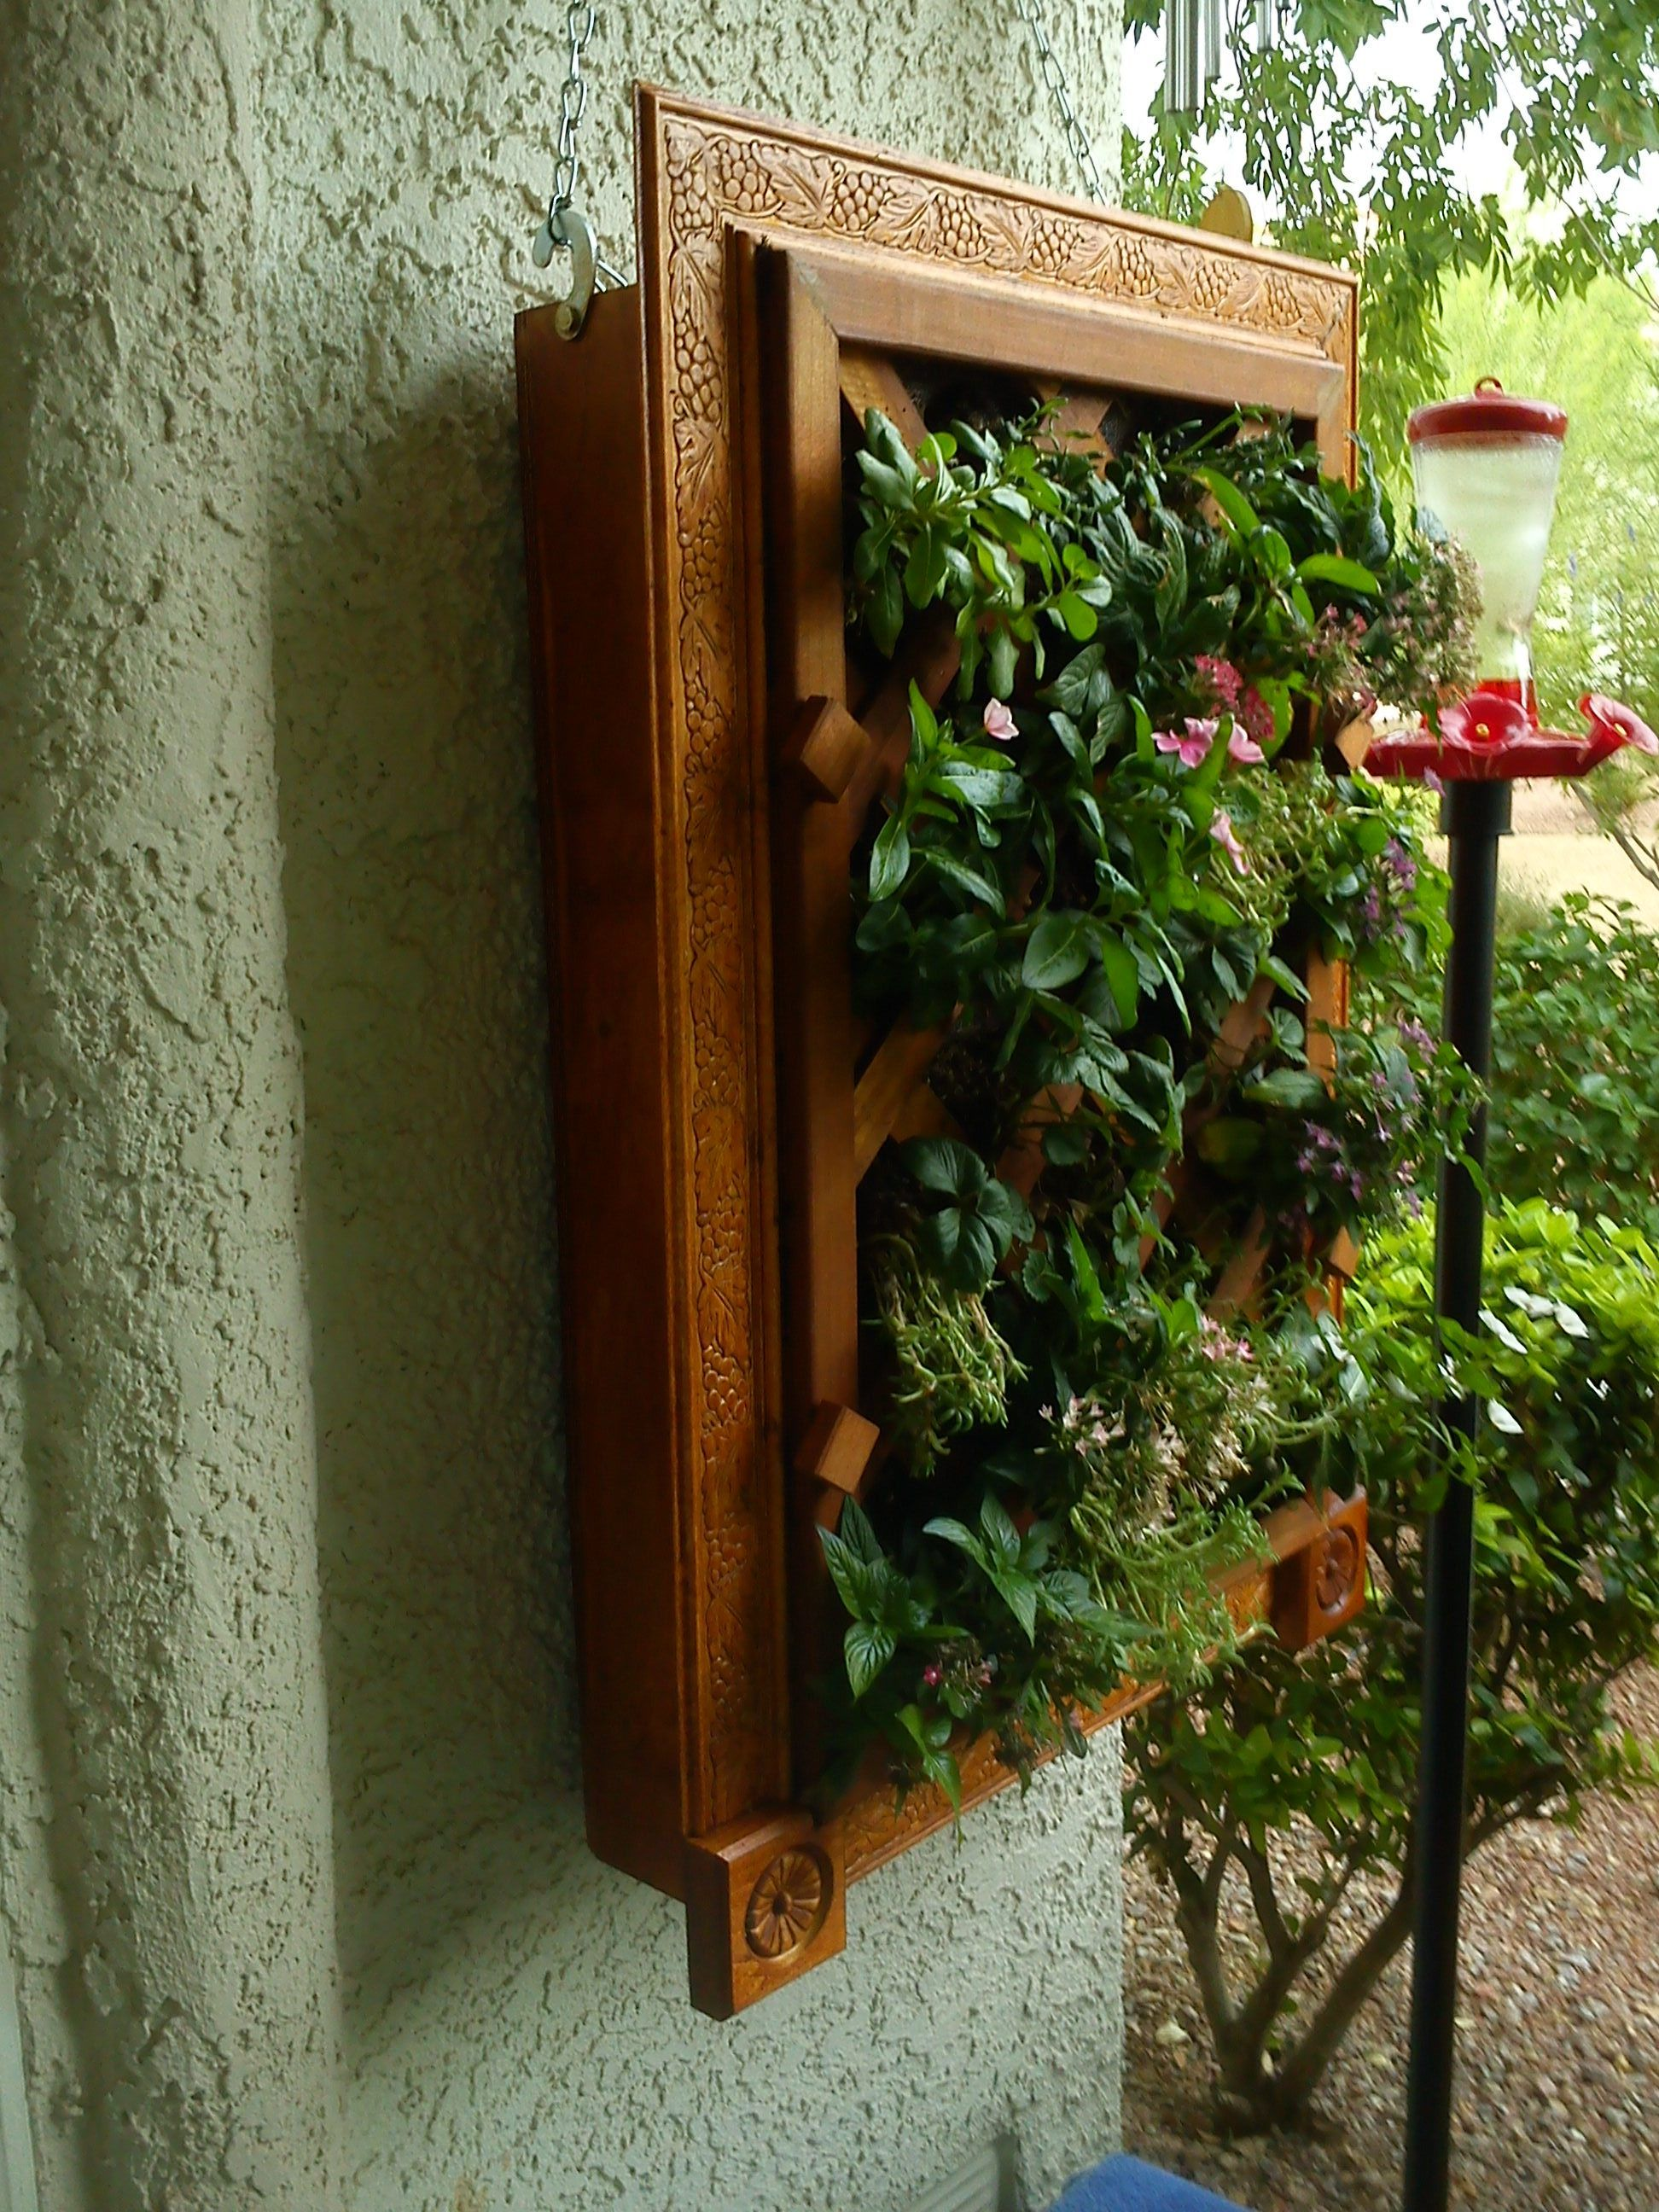 Charmant This Stunning Vertical Garden Box Was Built By Eugene Varcados, A Member Of  The Home Depot Community. Join Eugene And Others From All Over The Country  And ...